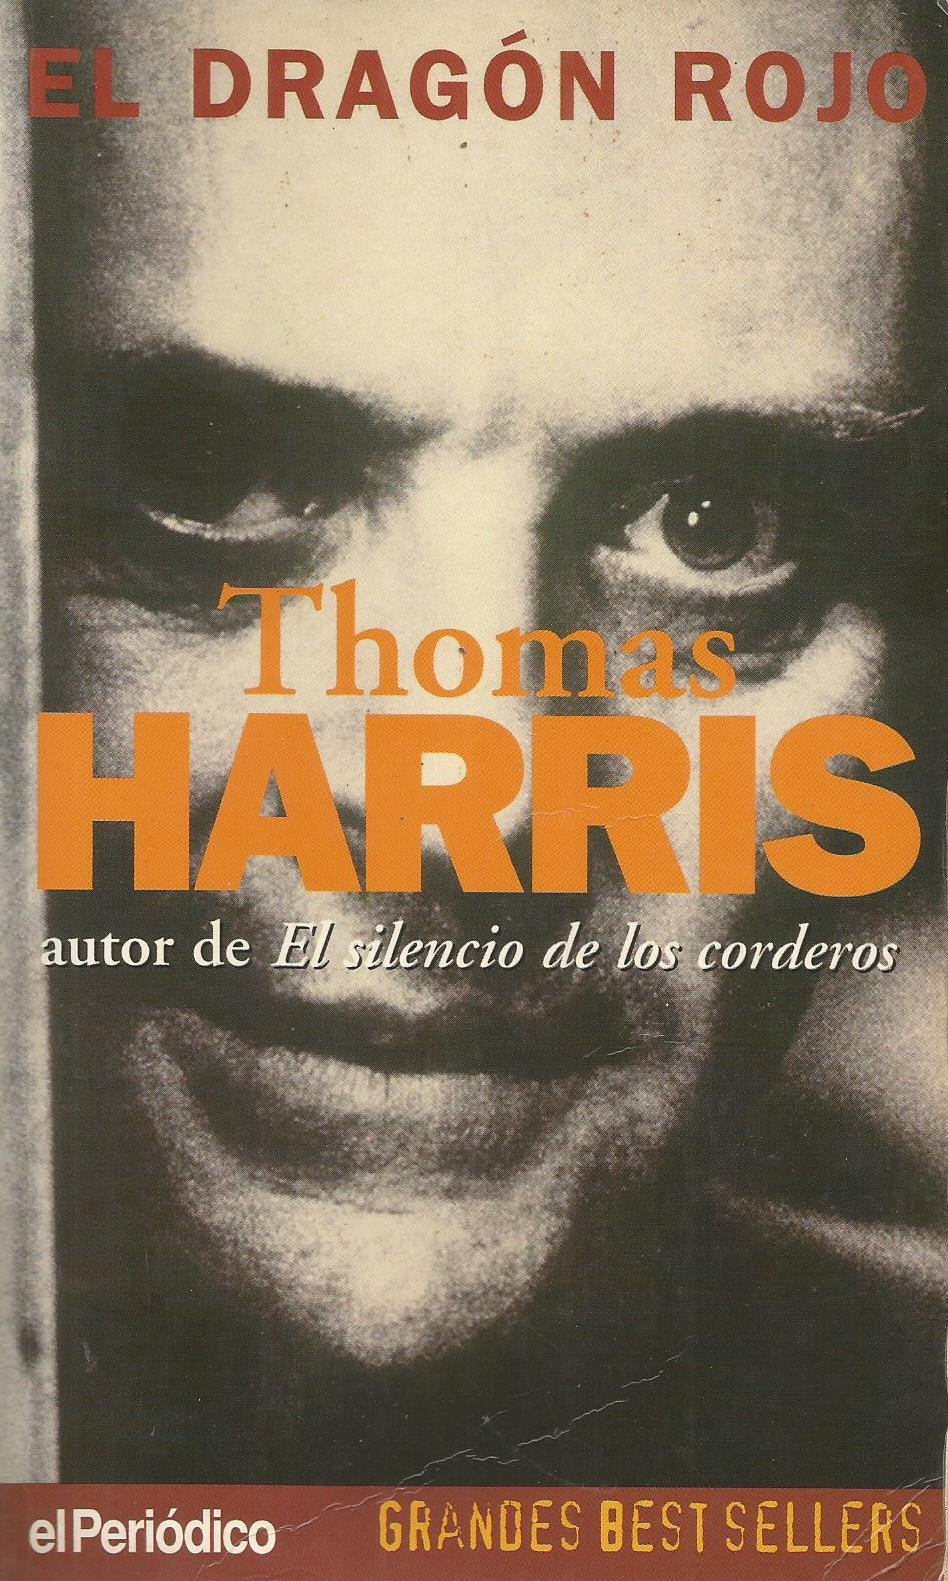 EL DRAGÓN ROJO: Amazon.es: Thomas Harris: Libros